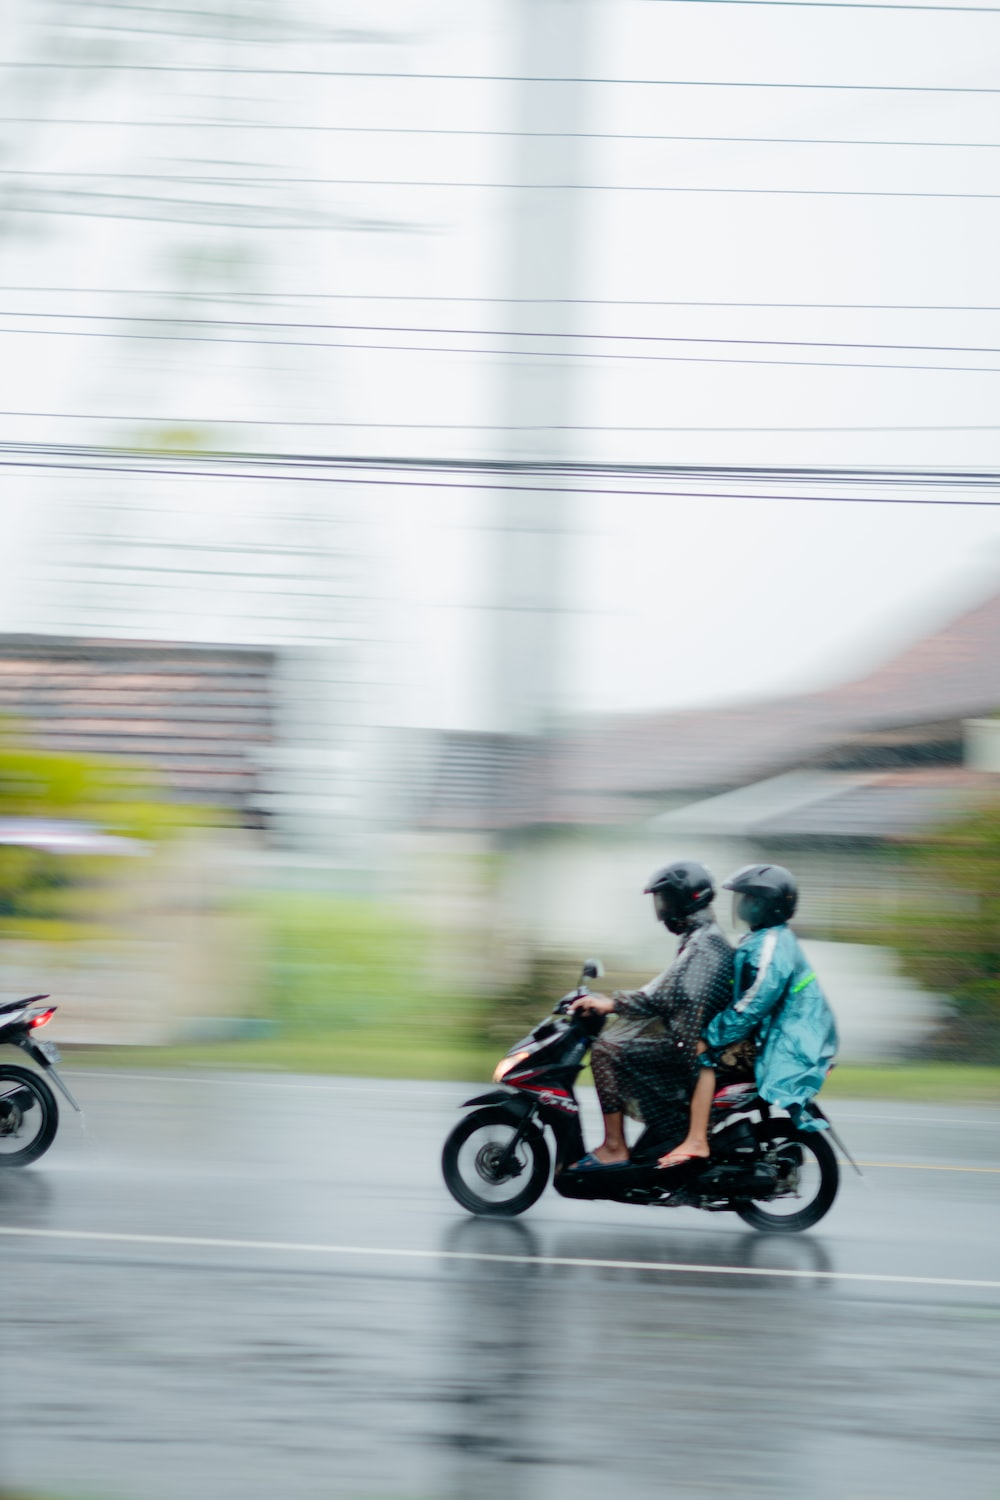 man and woman riding motorcycle on road during daytime